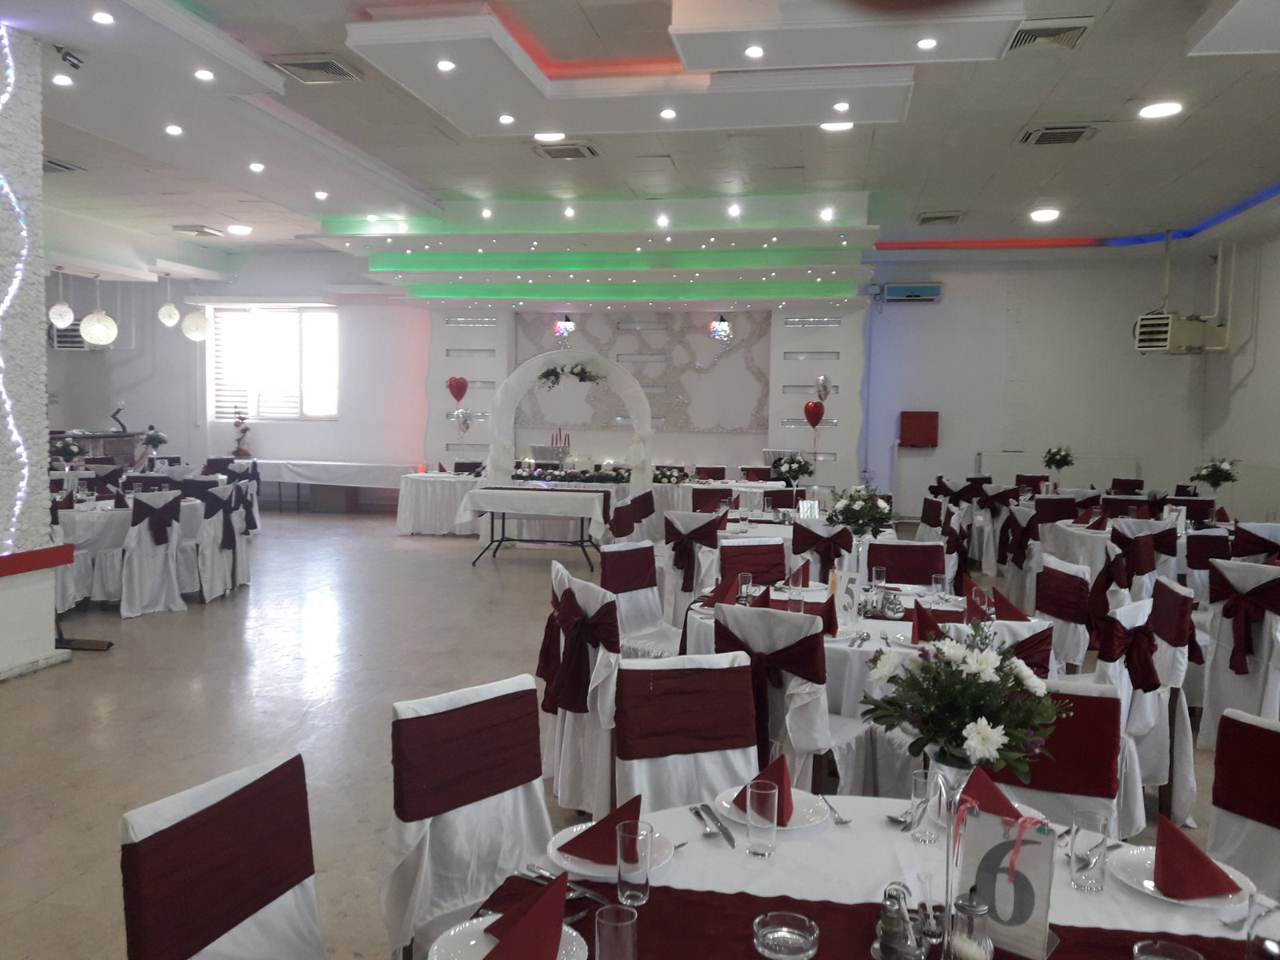 GRAND HALL KACAREVO AND CAFFE GRILL TICINO Renting halls Pancevo - Photo 12